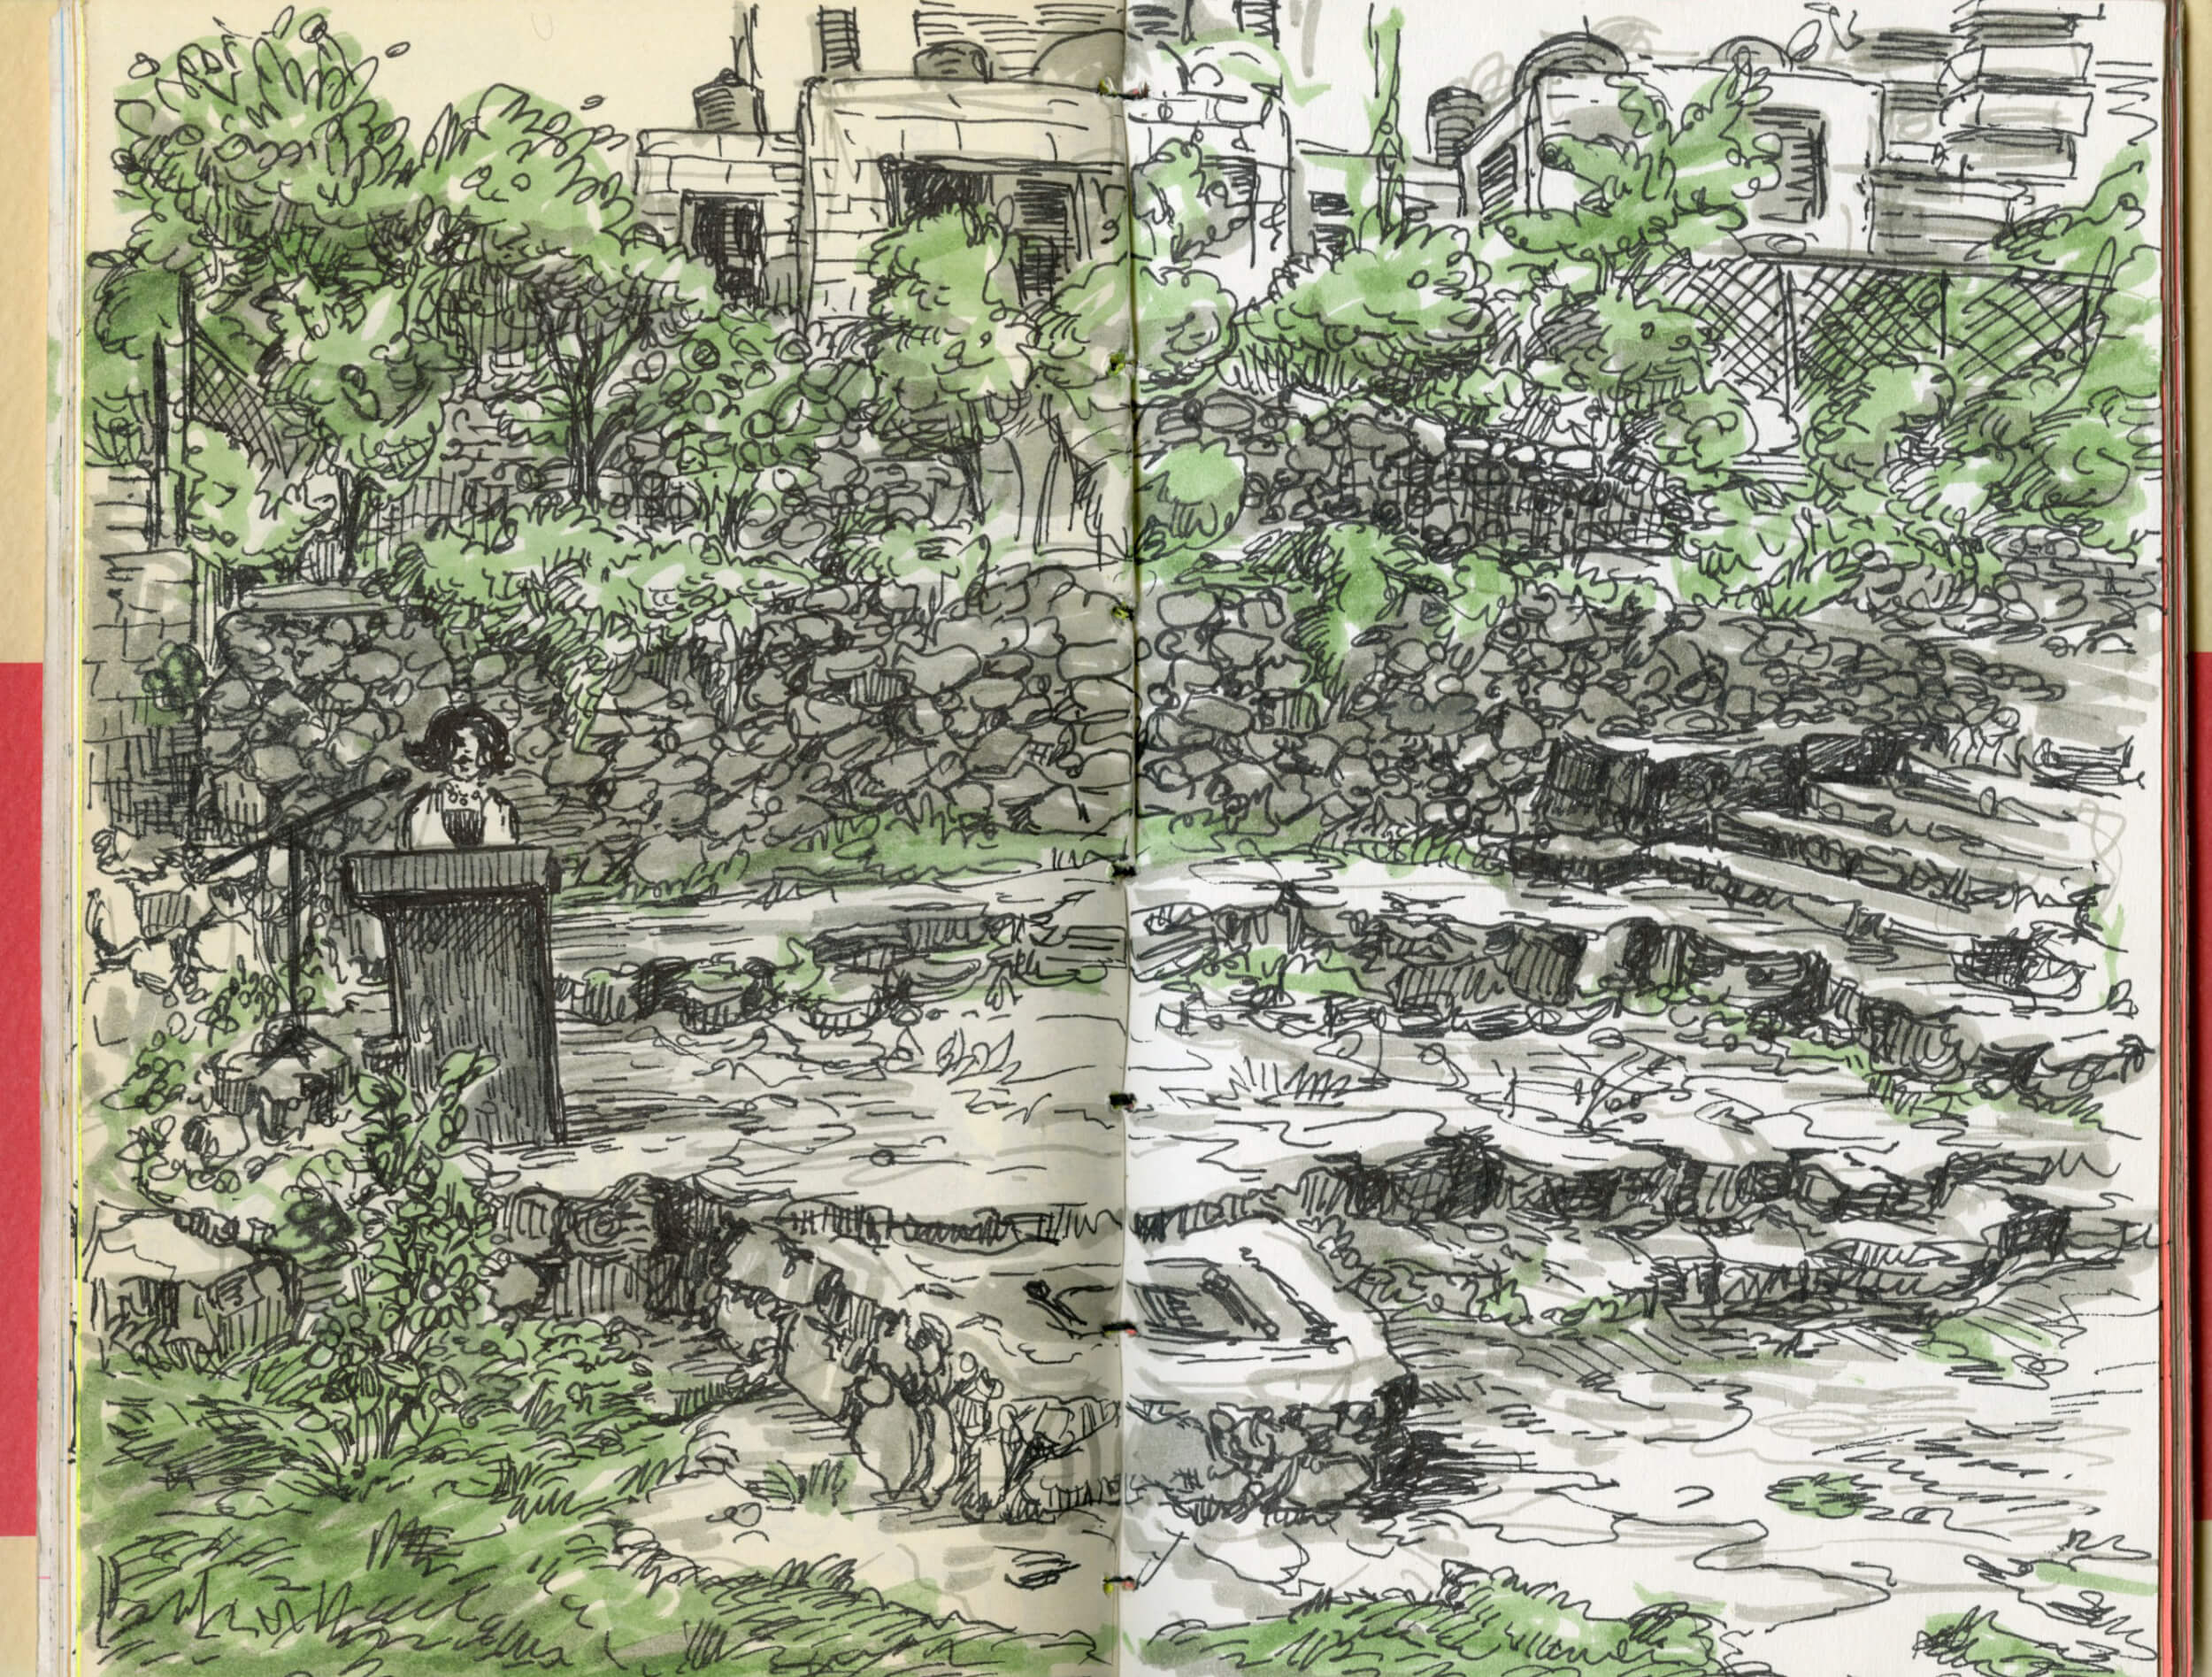 PalFest 2015's closing night in Ramallah. (Sketch by Molly Crabapple)